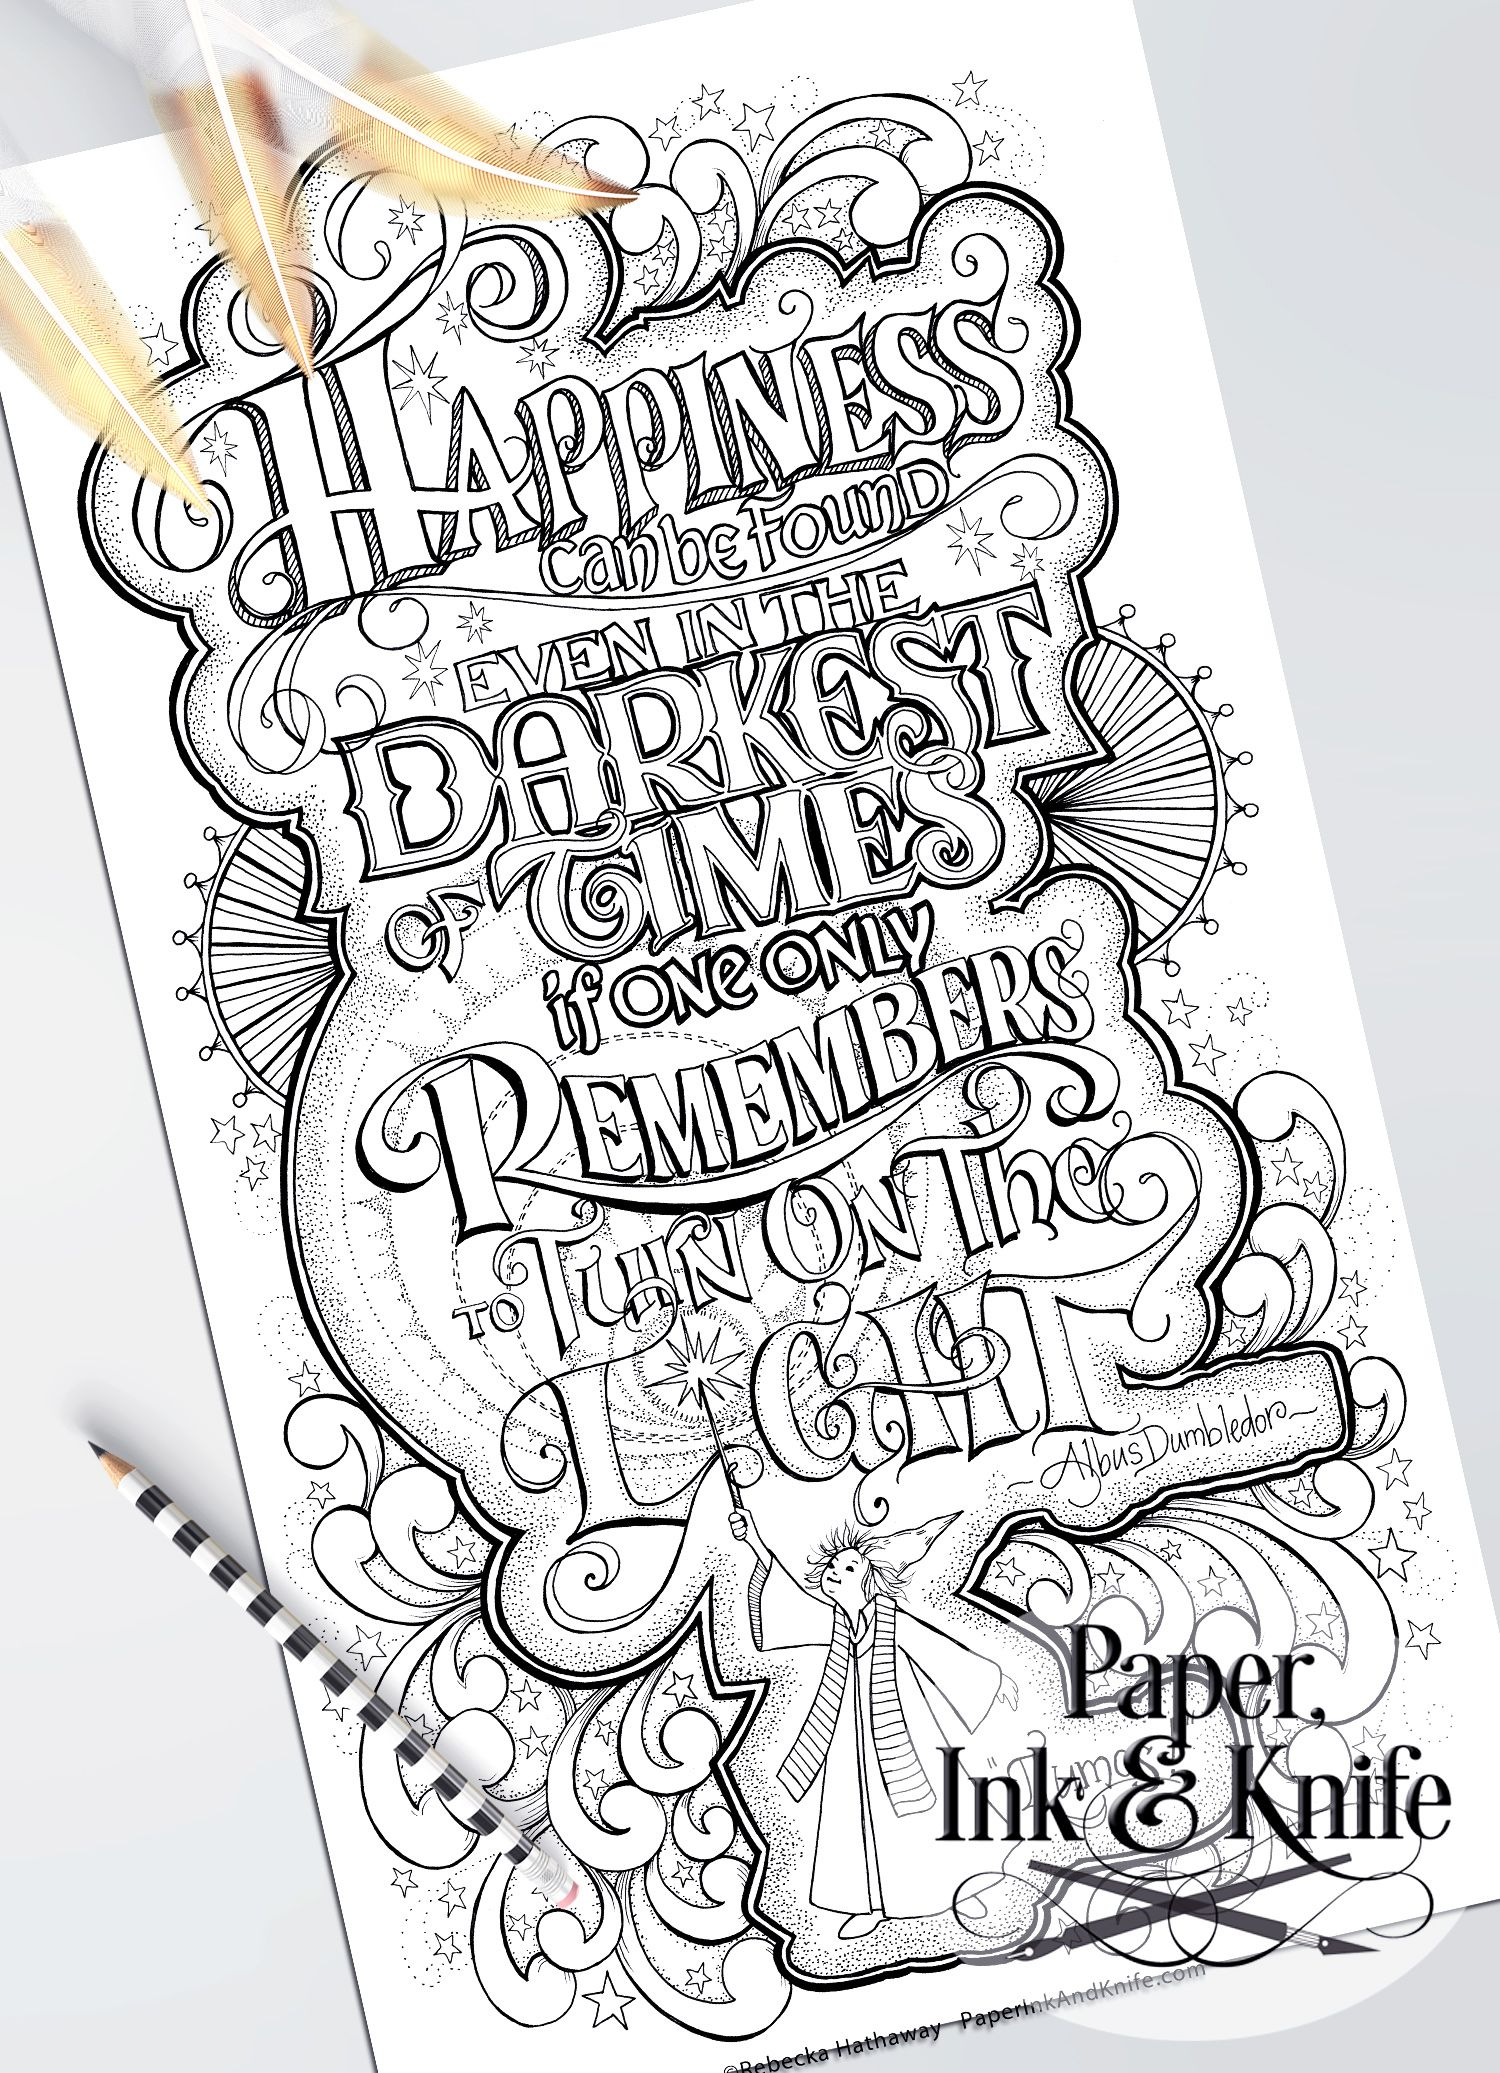 Happiness Can Still Be Found Coloring Page Paper Ink And Knife Harry Potter Coloring Book Harry Potter Coloring Pages Harry Potter Colors